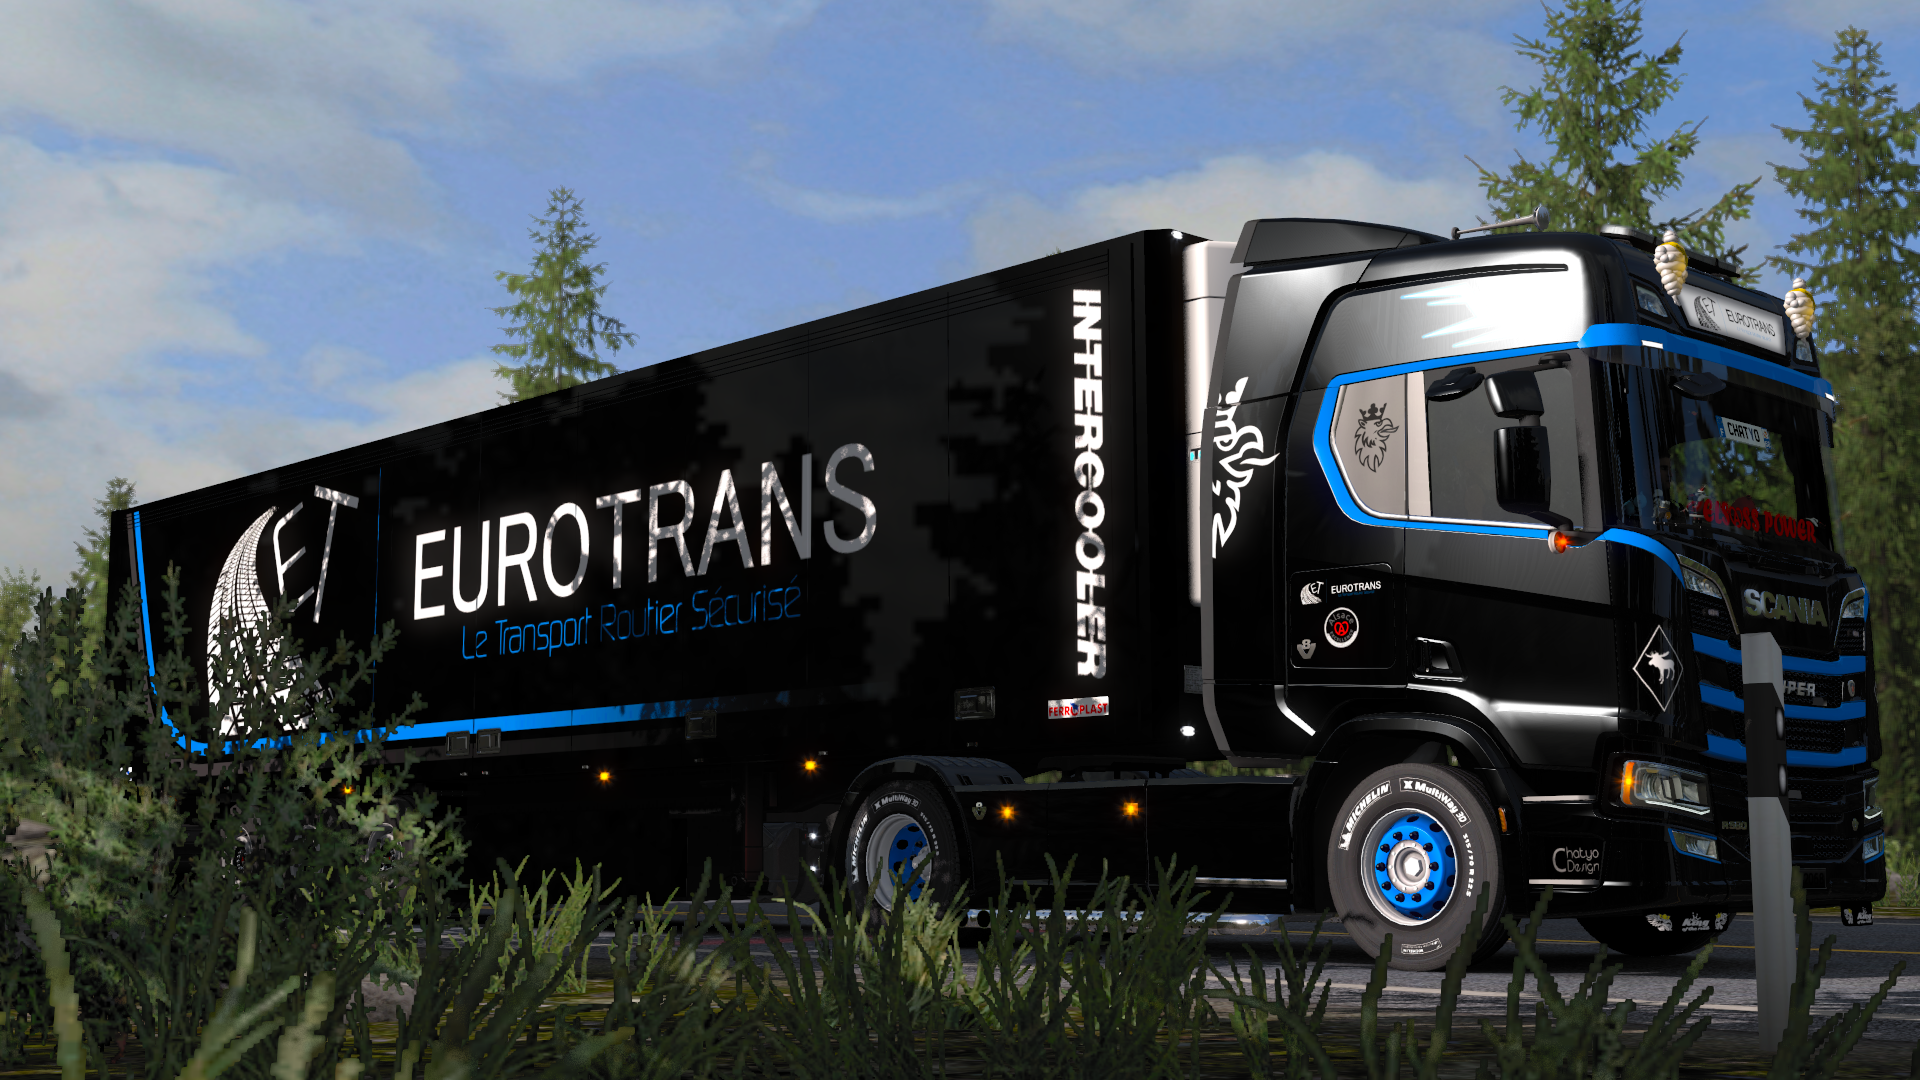 ets2_20190427_214249_00.png